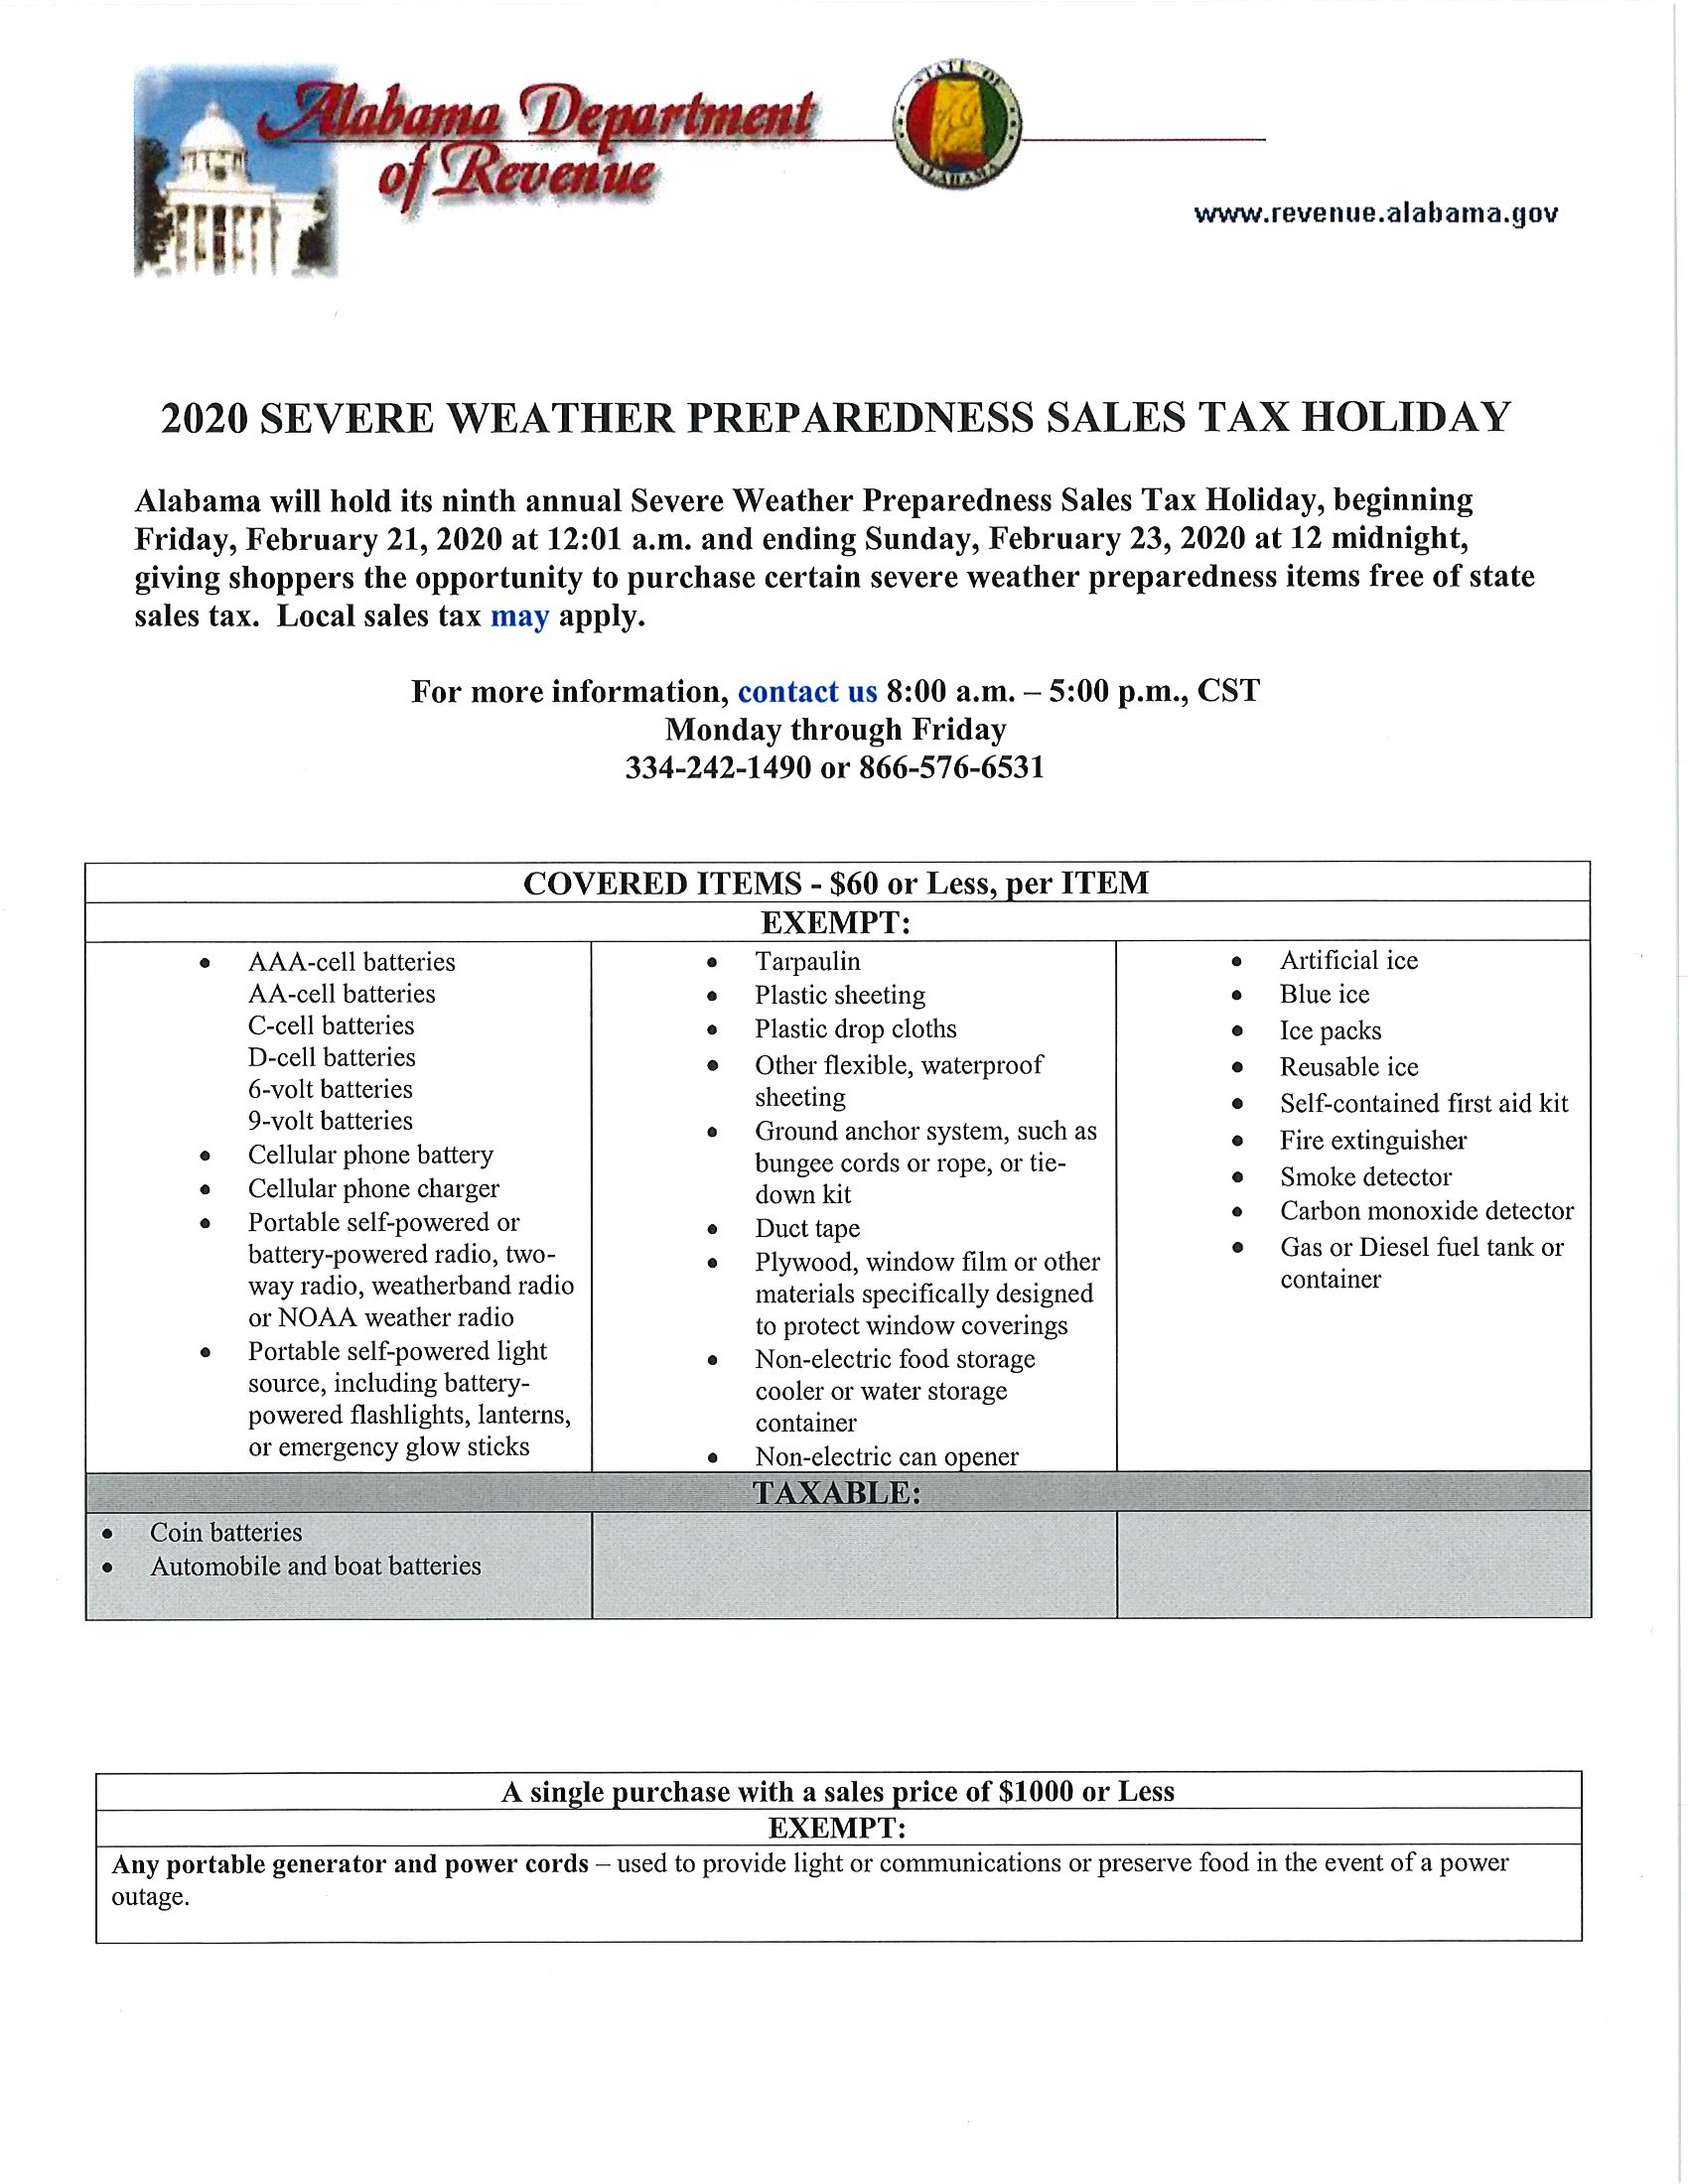 Severe Weather Sales Tax Holiday 2